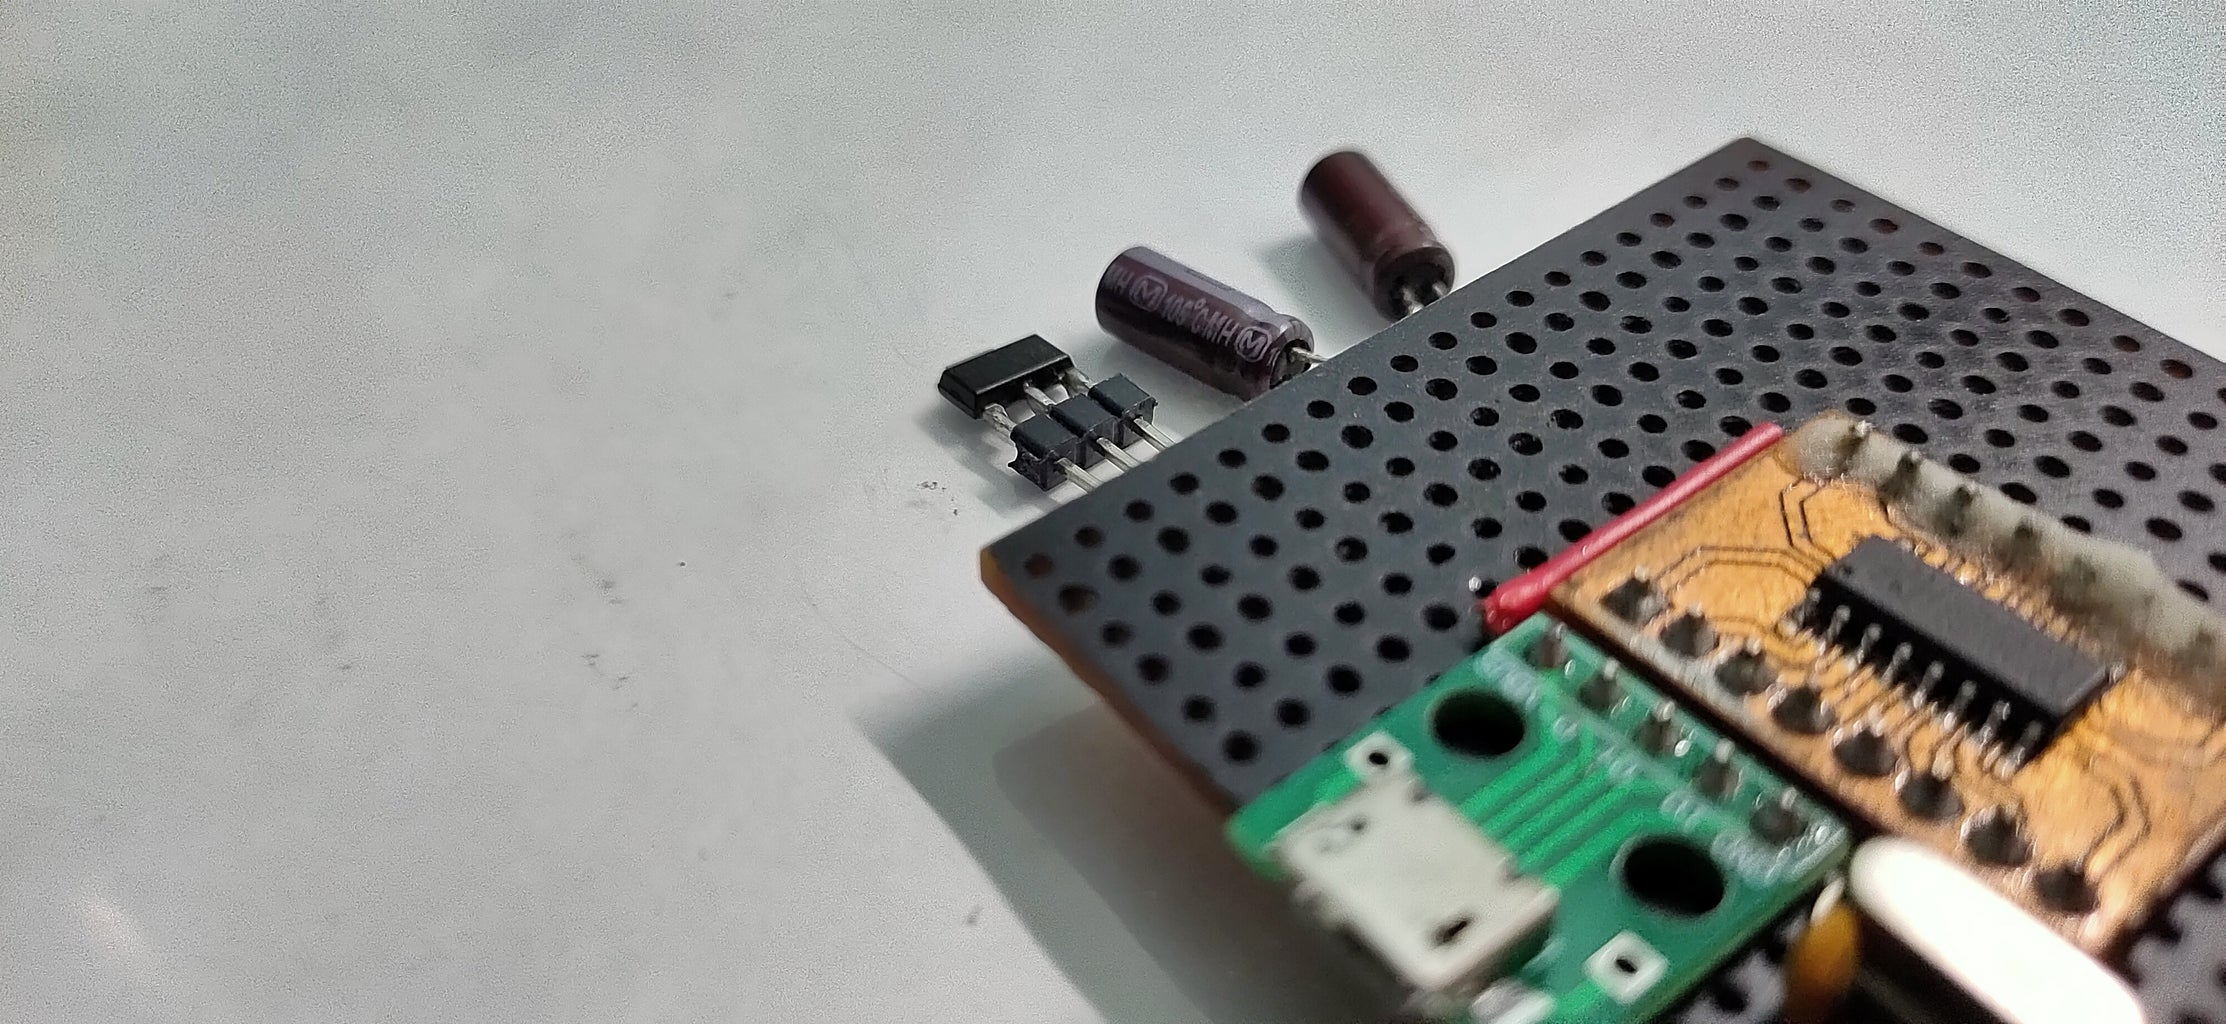 Adding the Power Supply Components